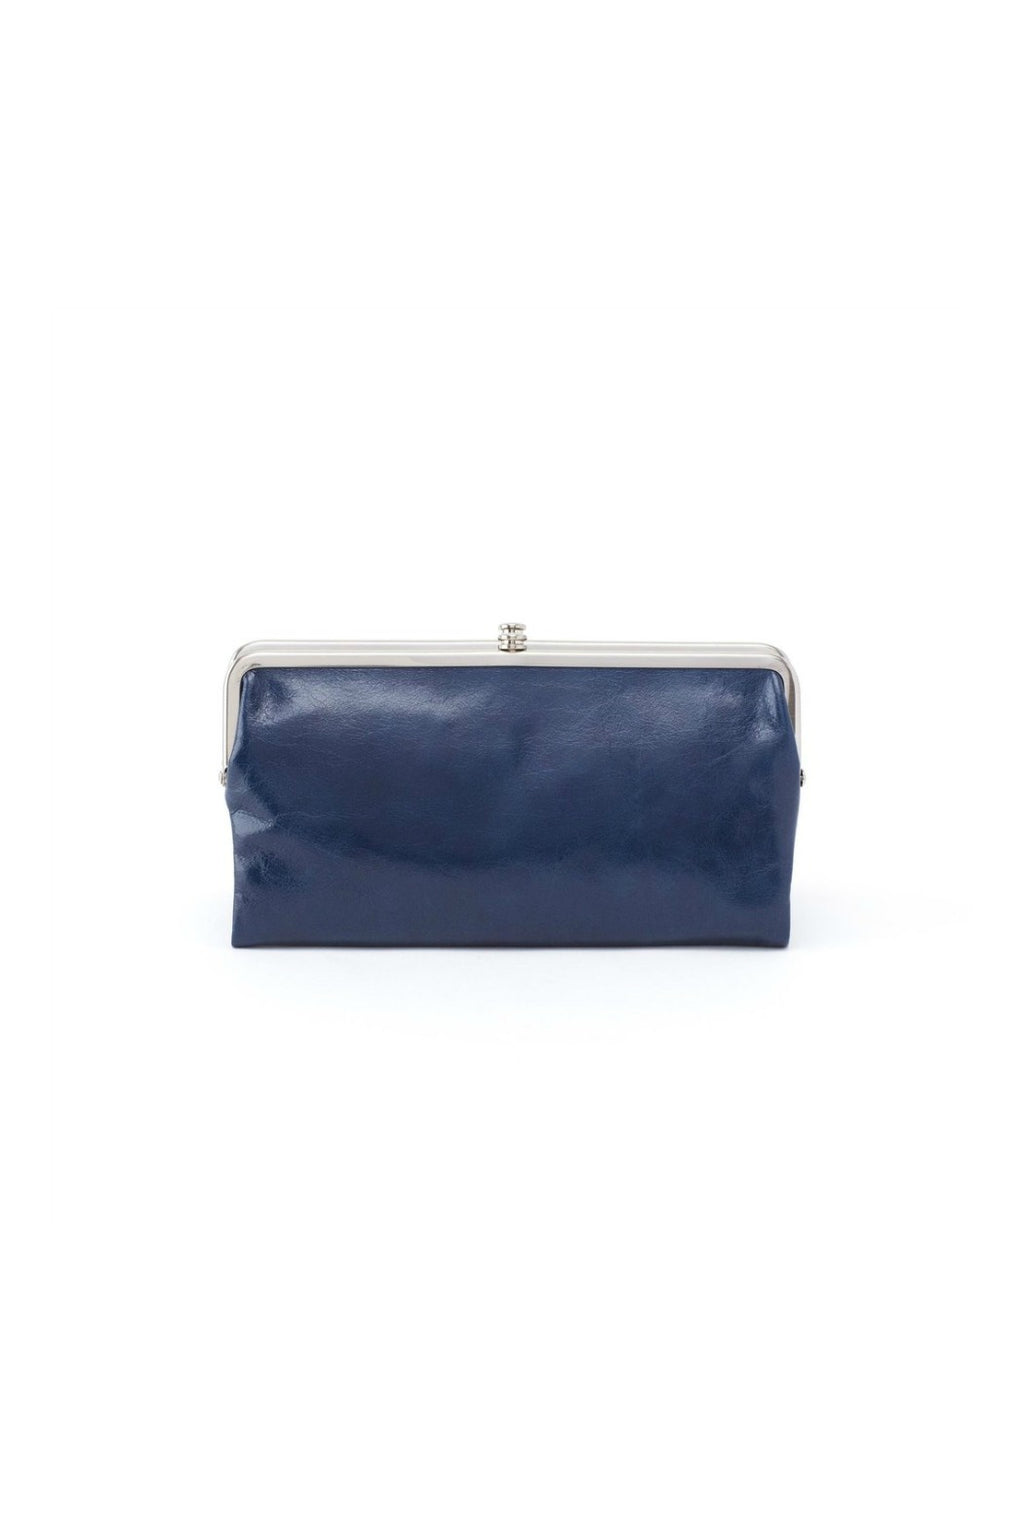 Hobo Lauren Wallet in Indigo